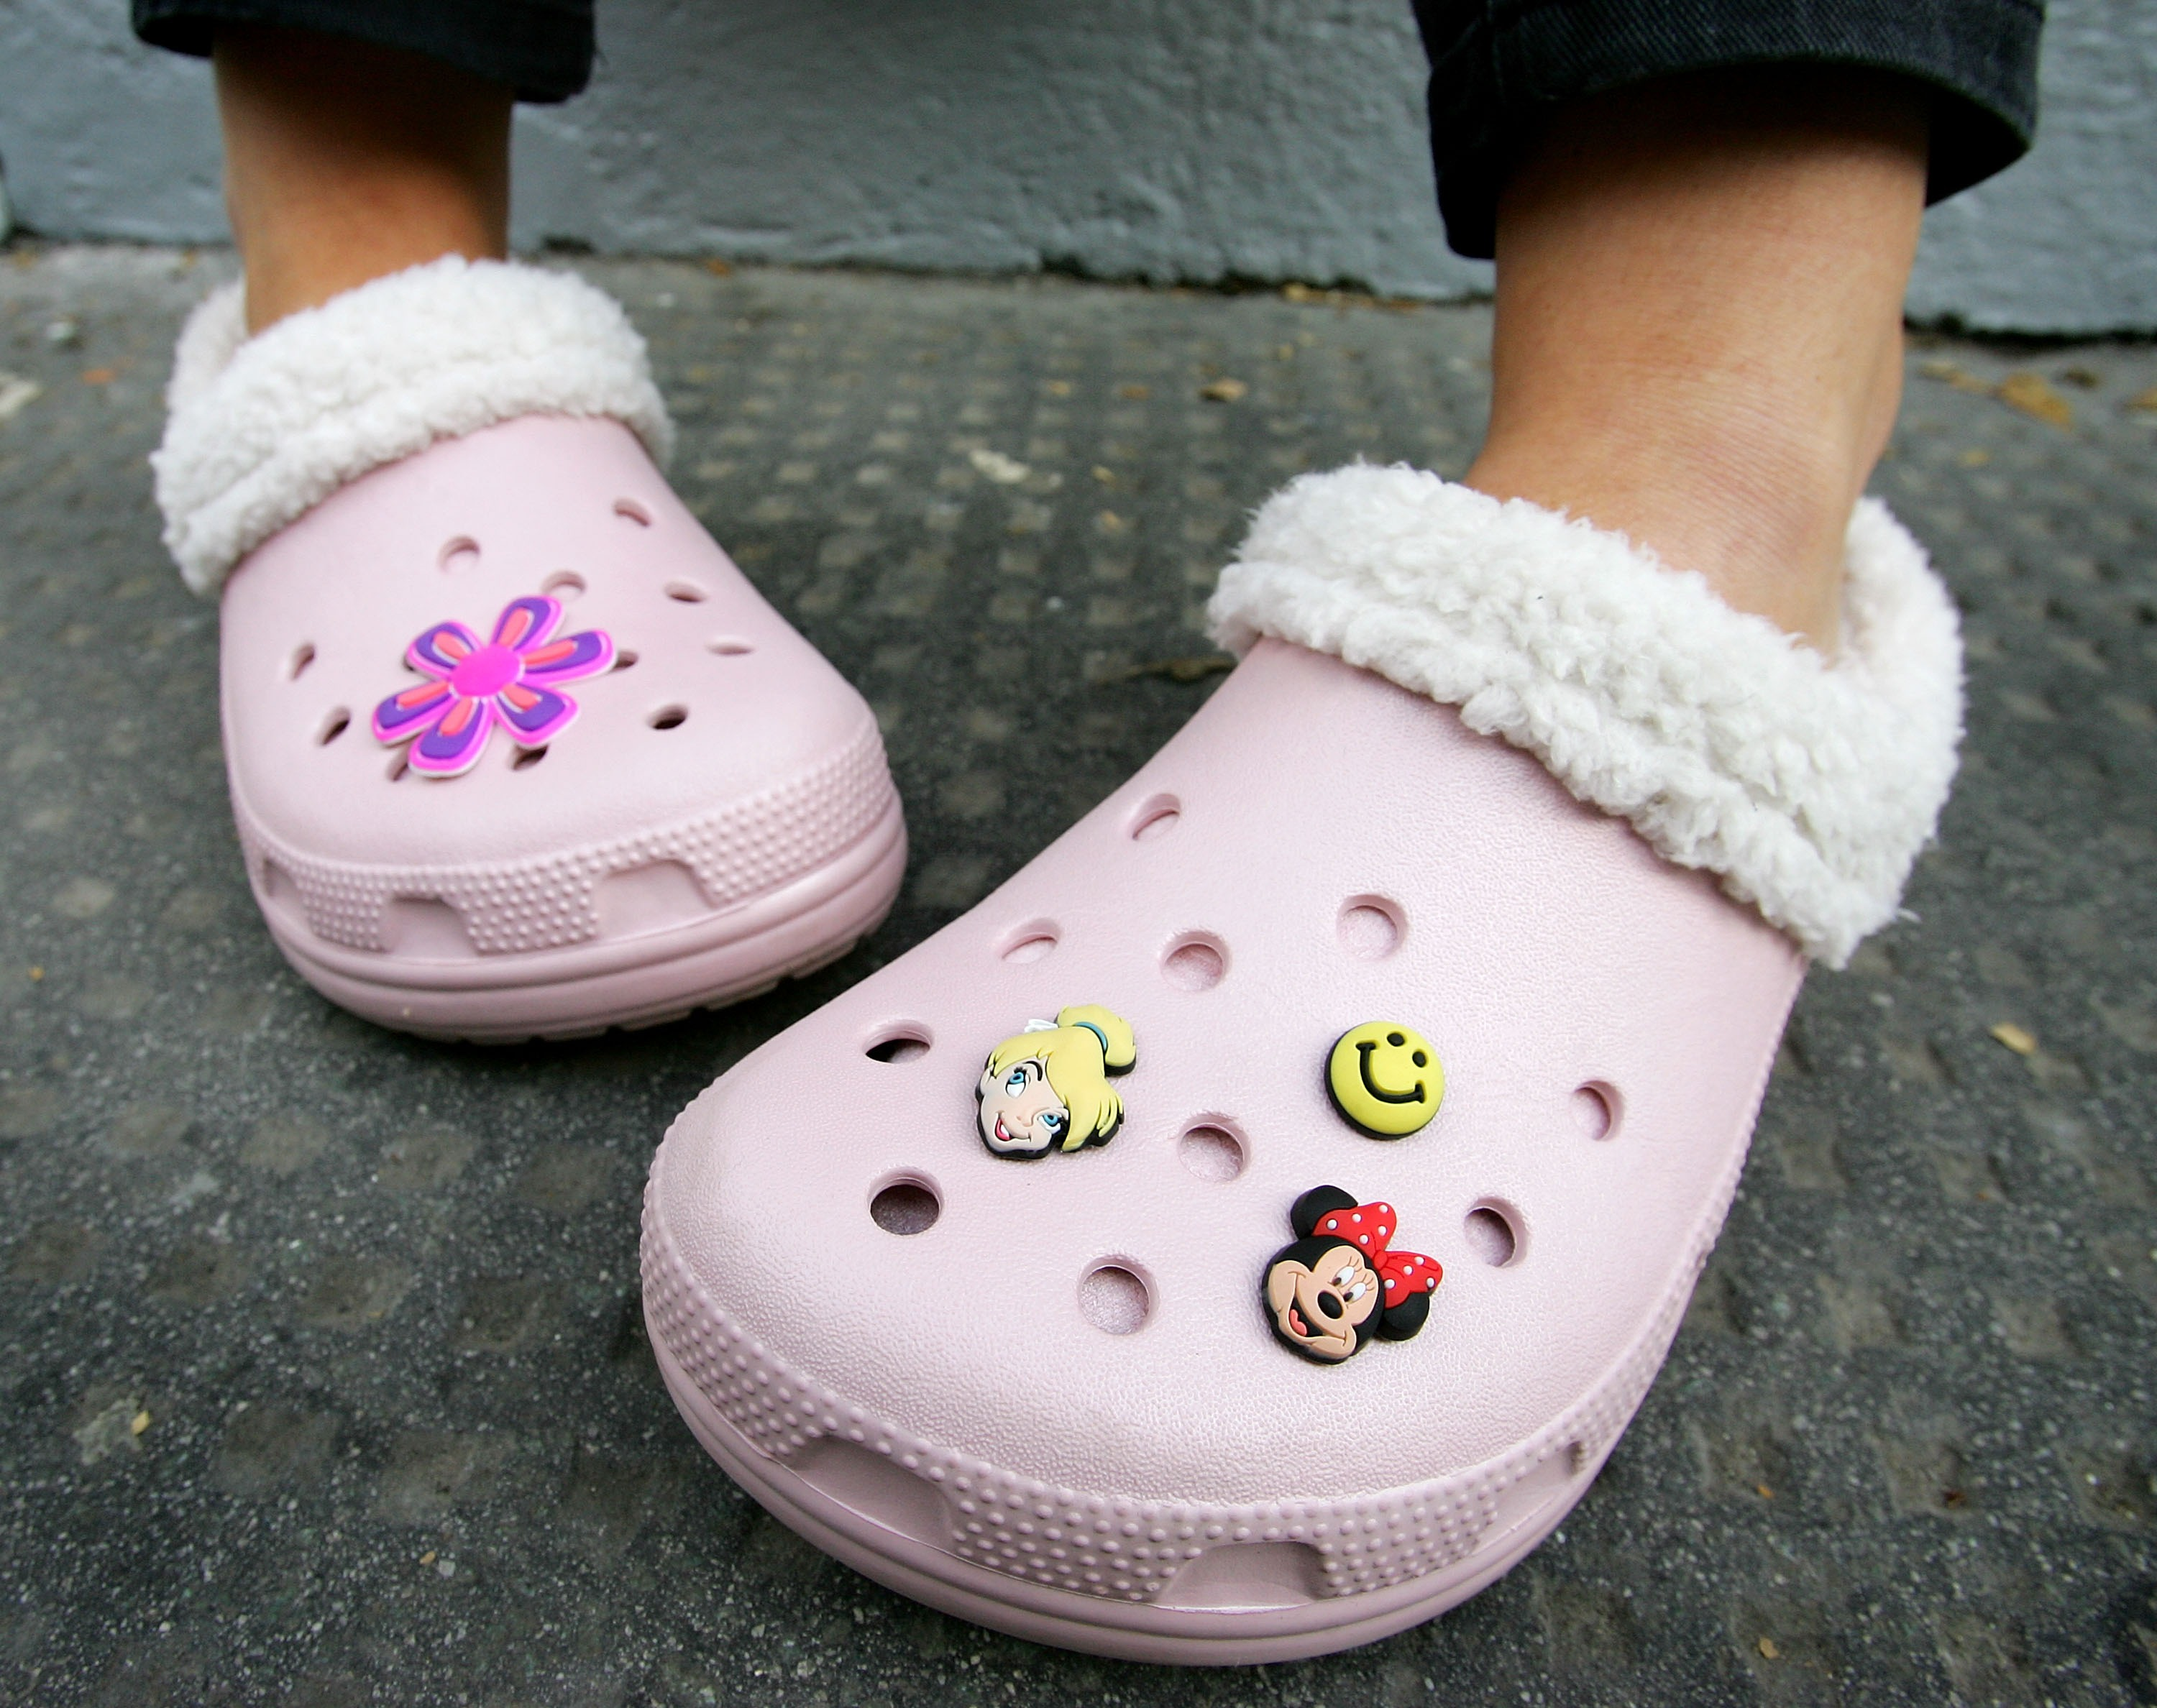 How to Clean, Wash, Deodorize Crocs and